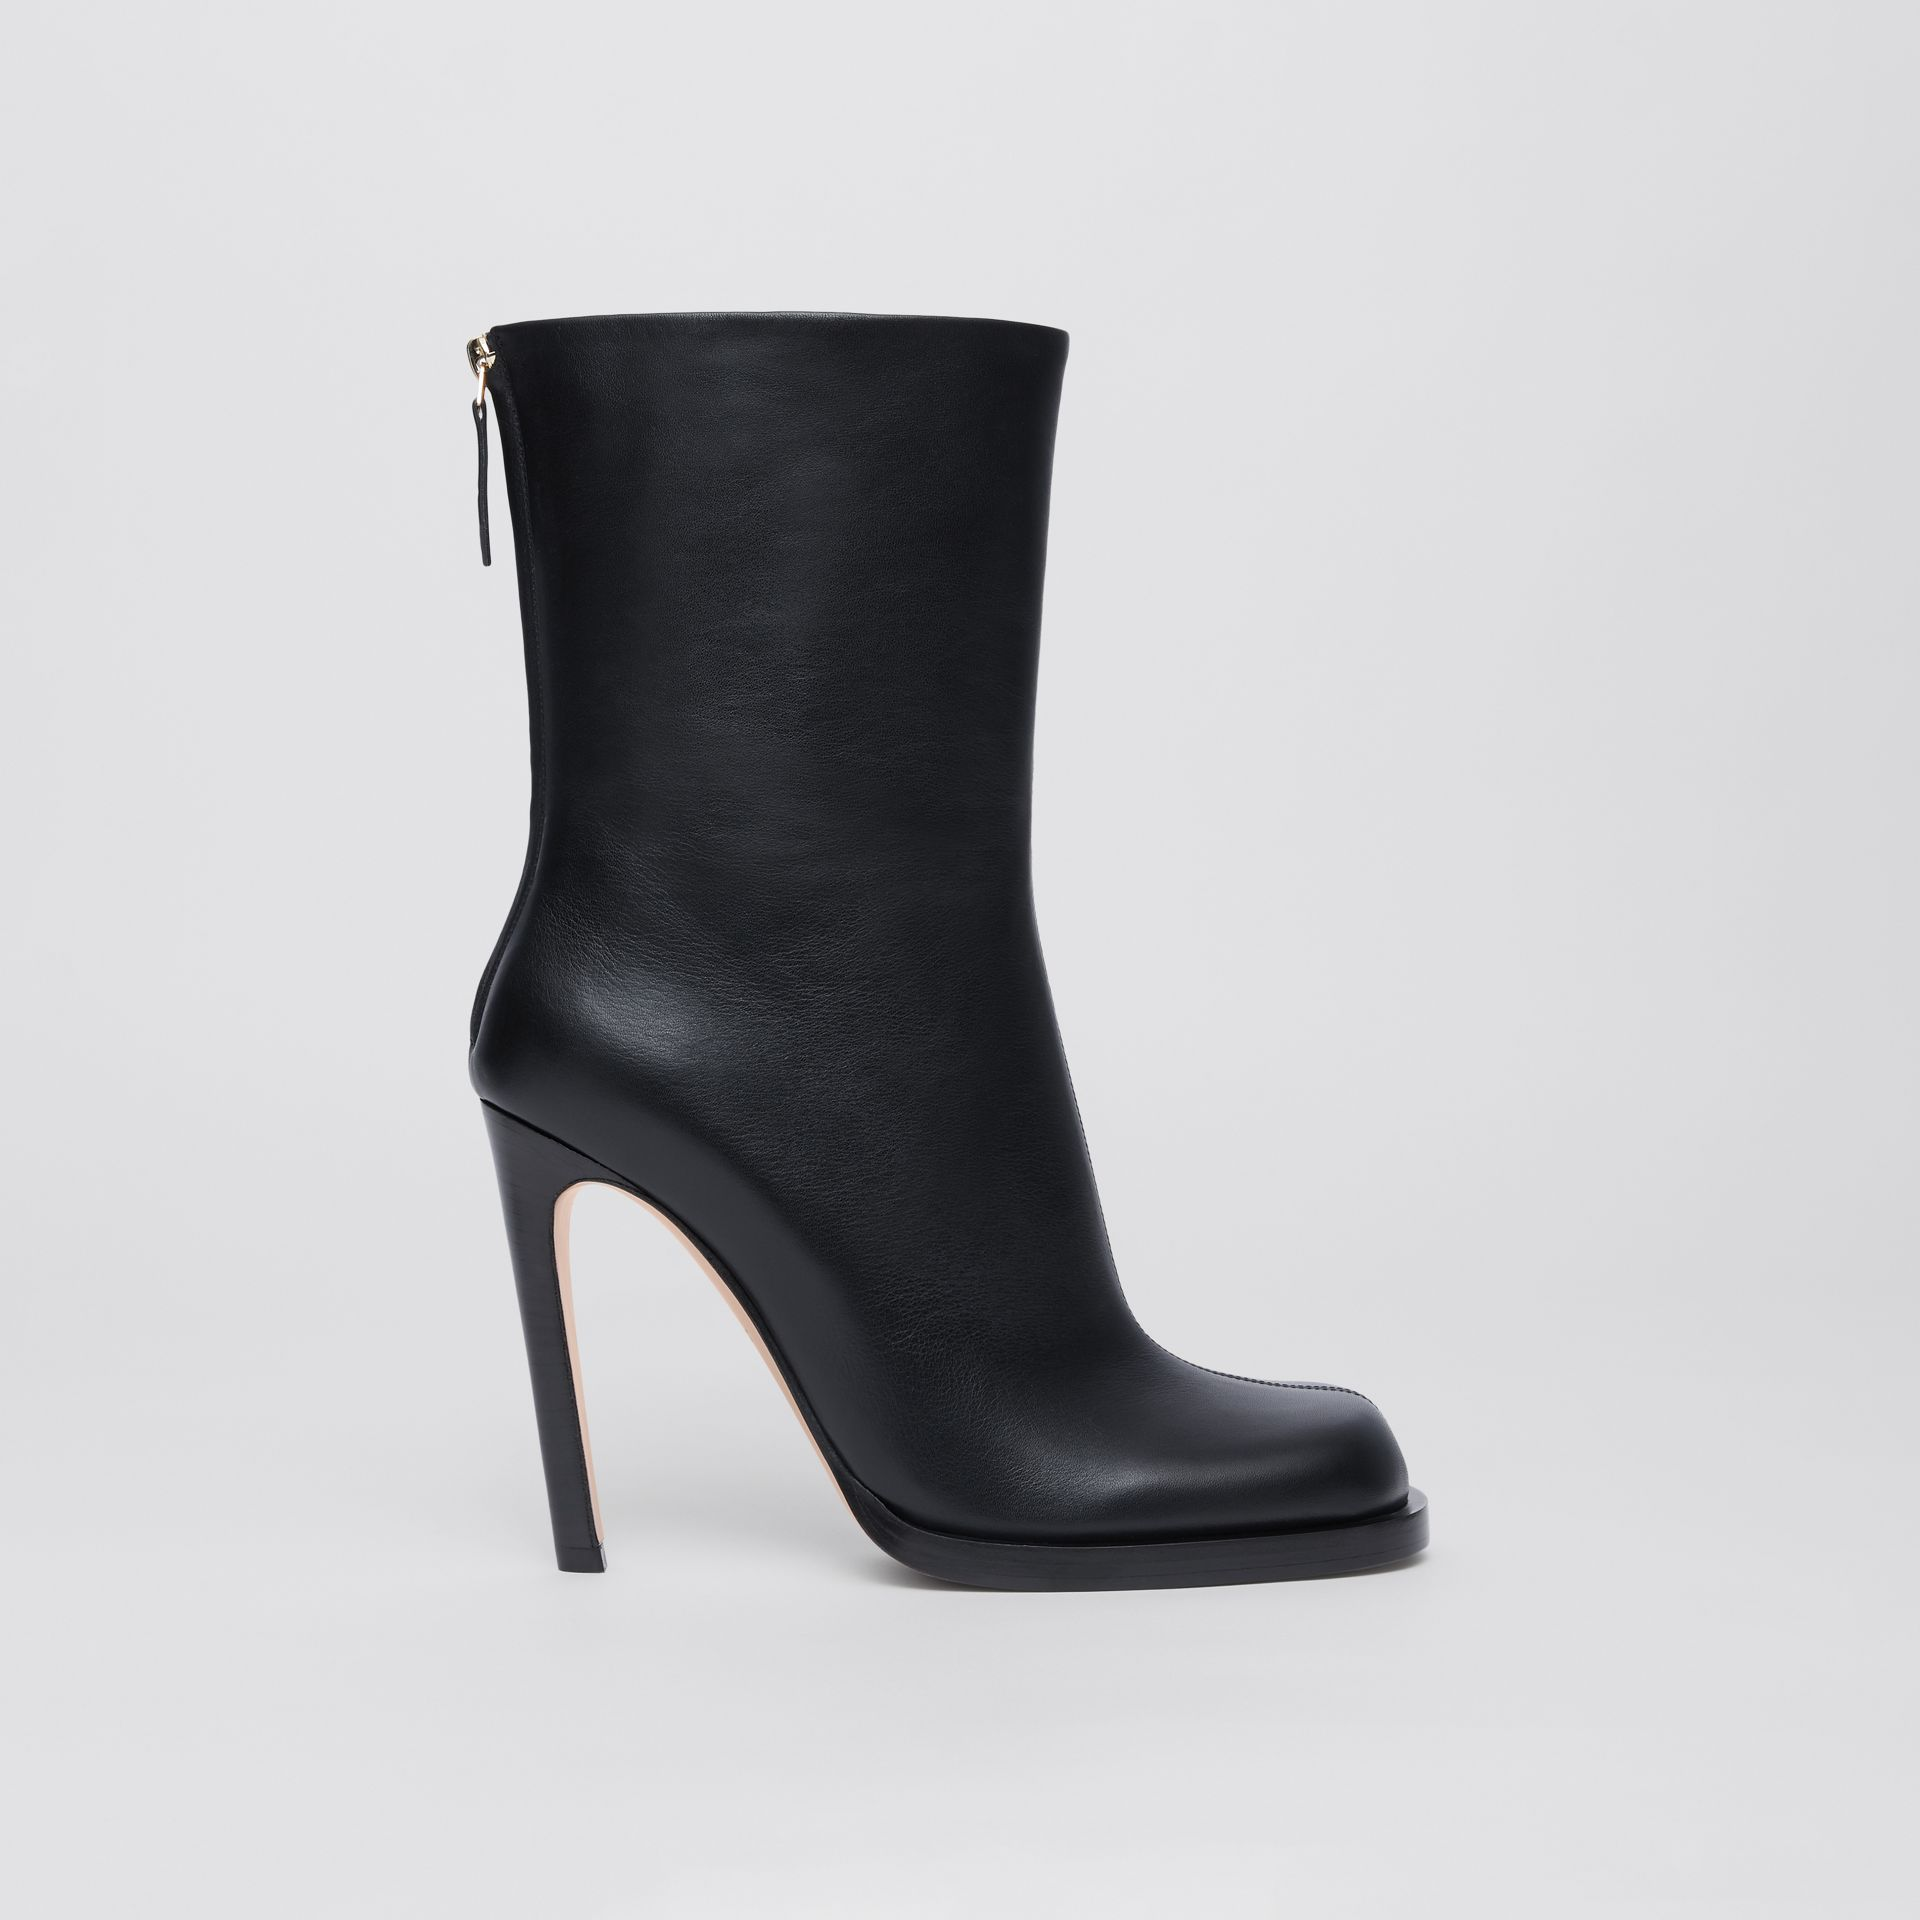 Vintage Check-lined Leather Ankle Boots in Black - Women | Burberry - gallery image 5